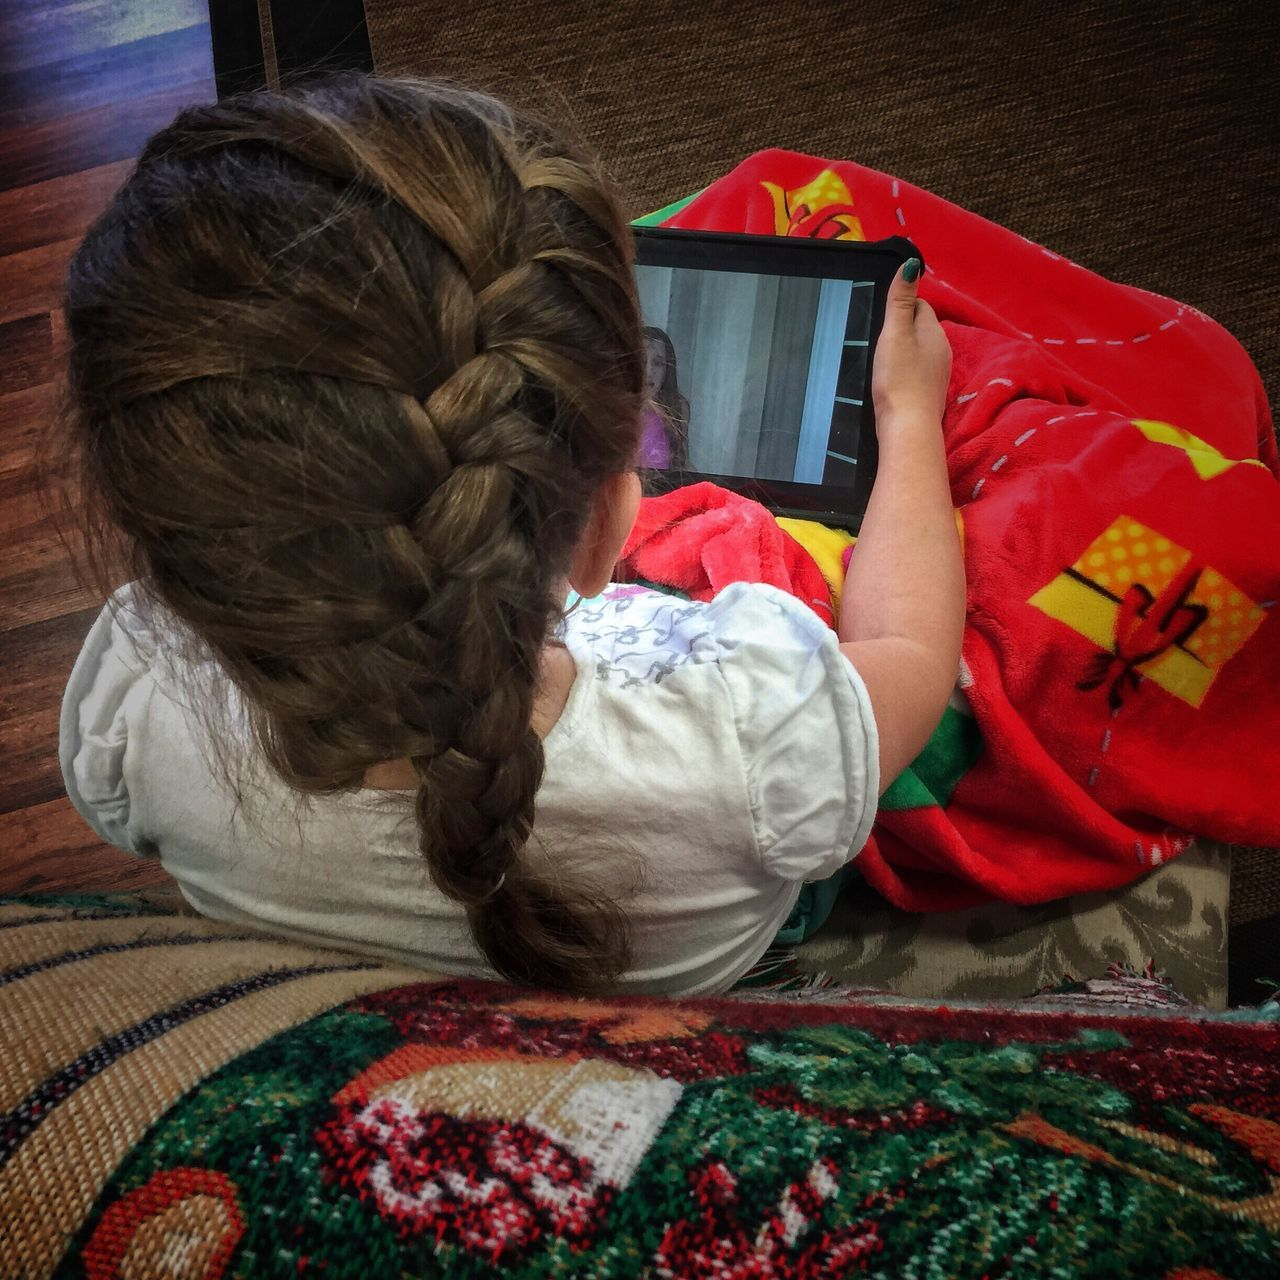 Quiet time Childhood Quiet Time Self Entertainment Young Girl Watching Tv Sitting Alone Child And Technology Sitting Quietly Engrossed